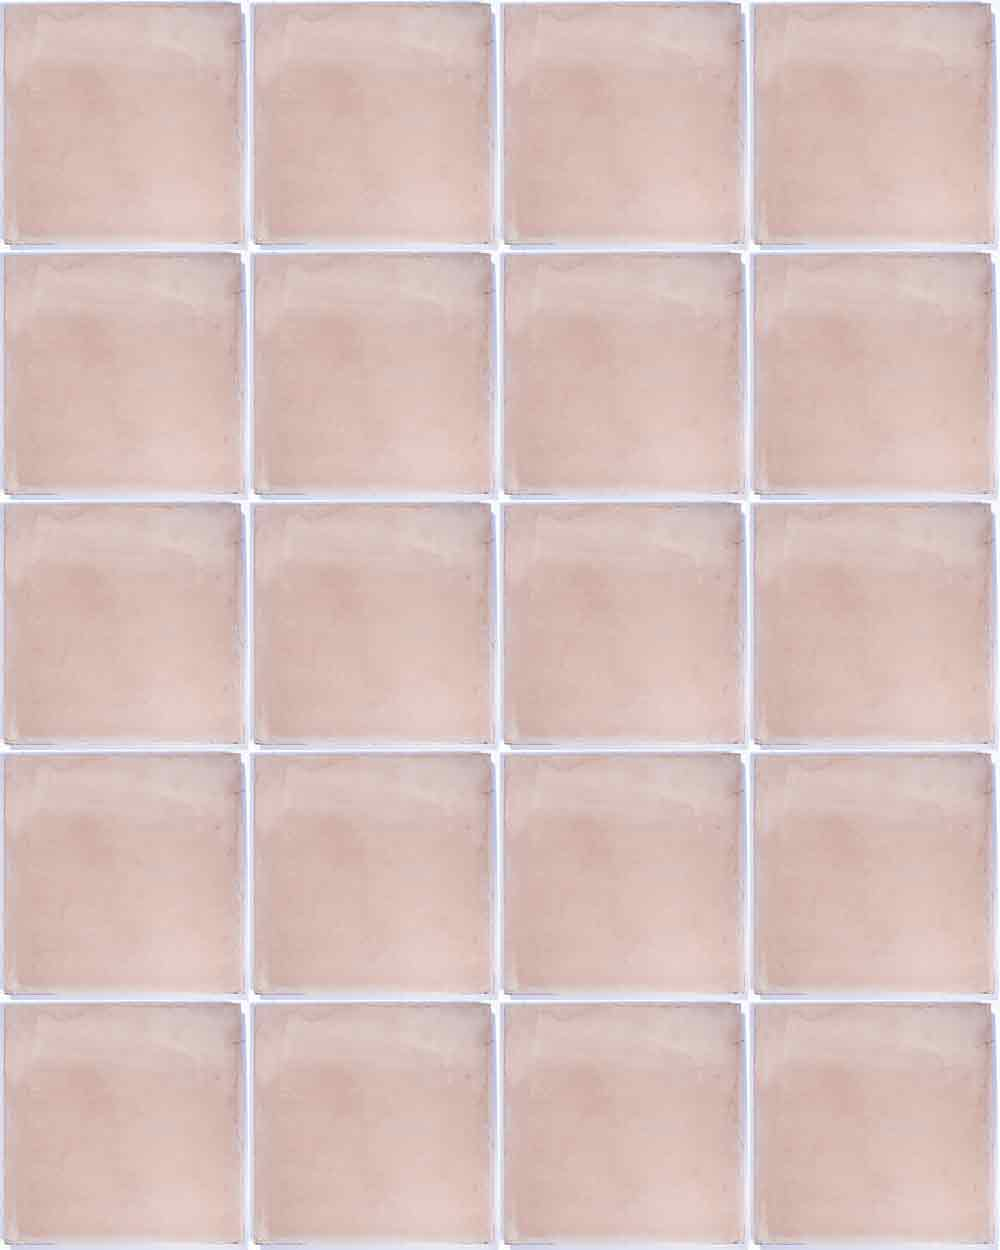 Pink lace encaustic tile milagros encaustic pink hand made floor tiles dailygadgetfo Image collections